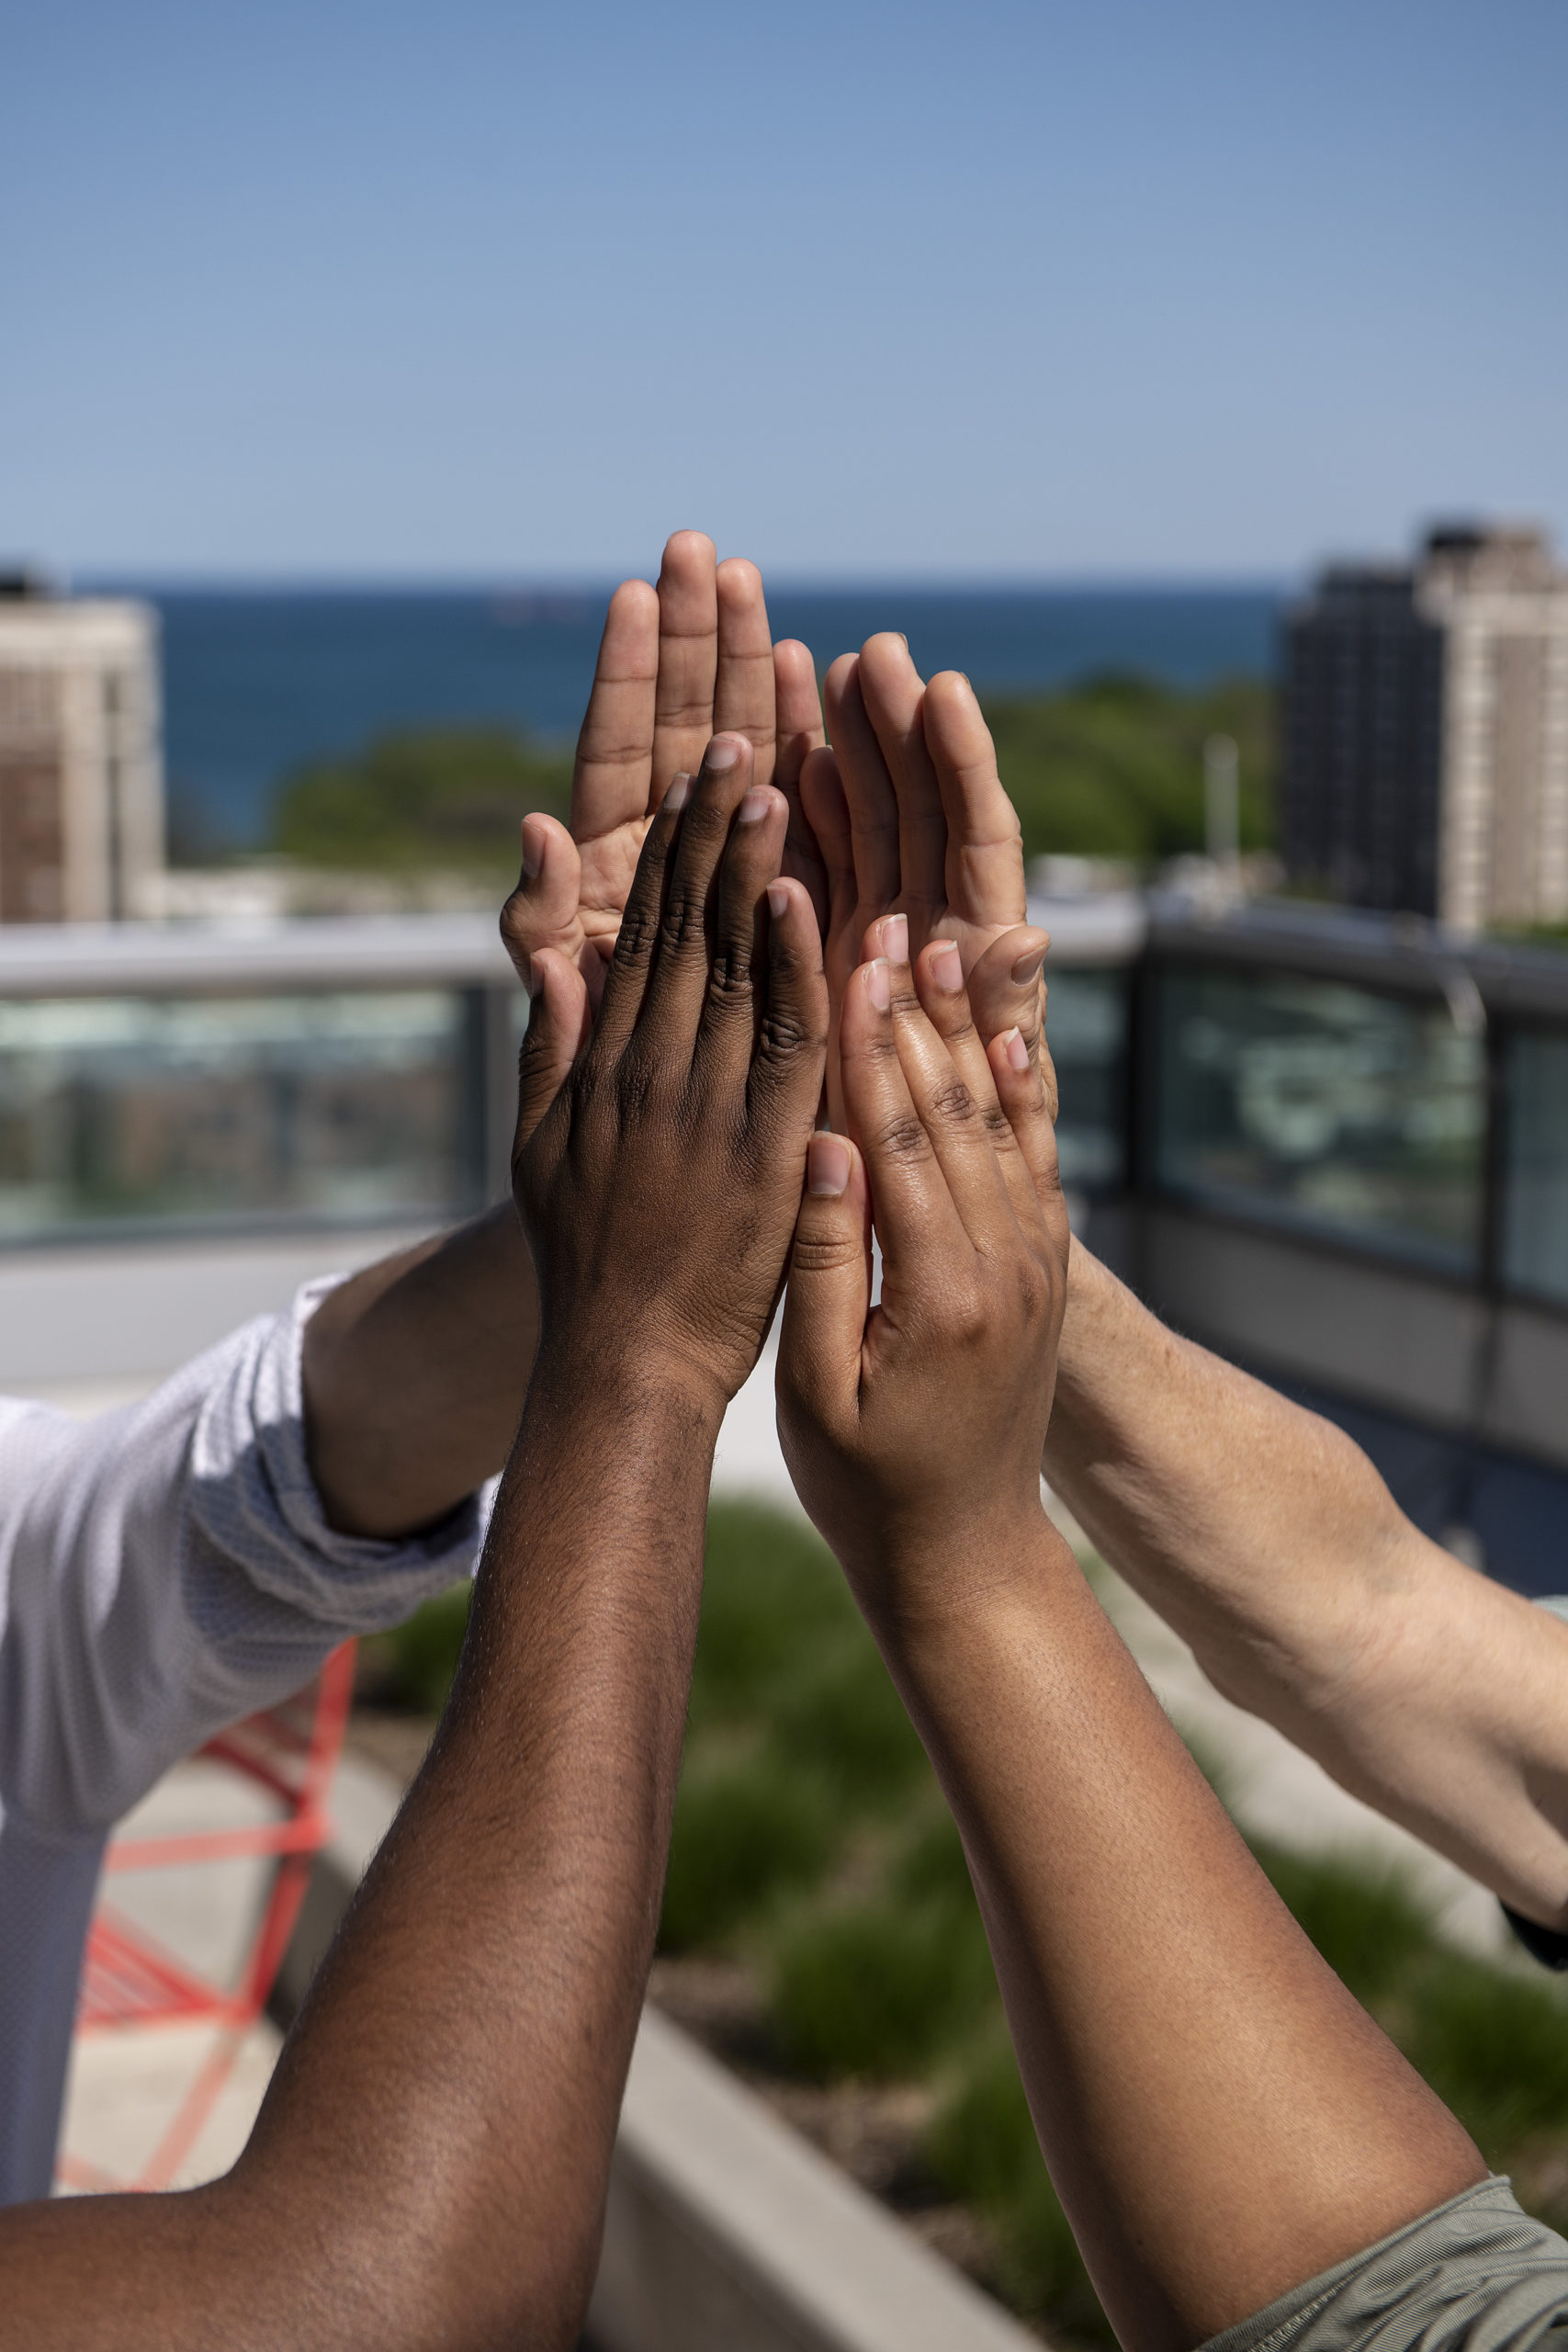 Four hands demonstrate the shape of the Obama Presidential Center tower against the Chicago skyline.